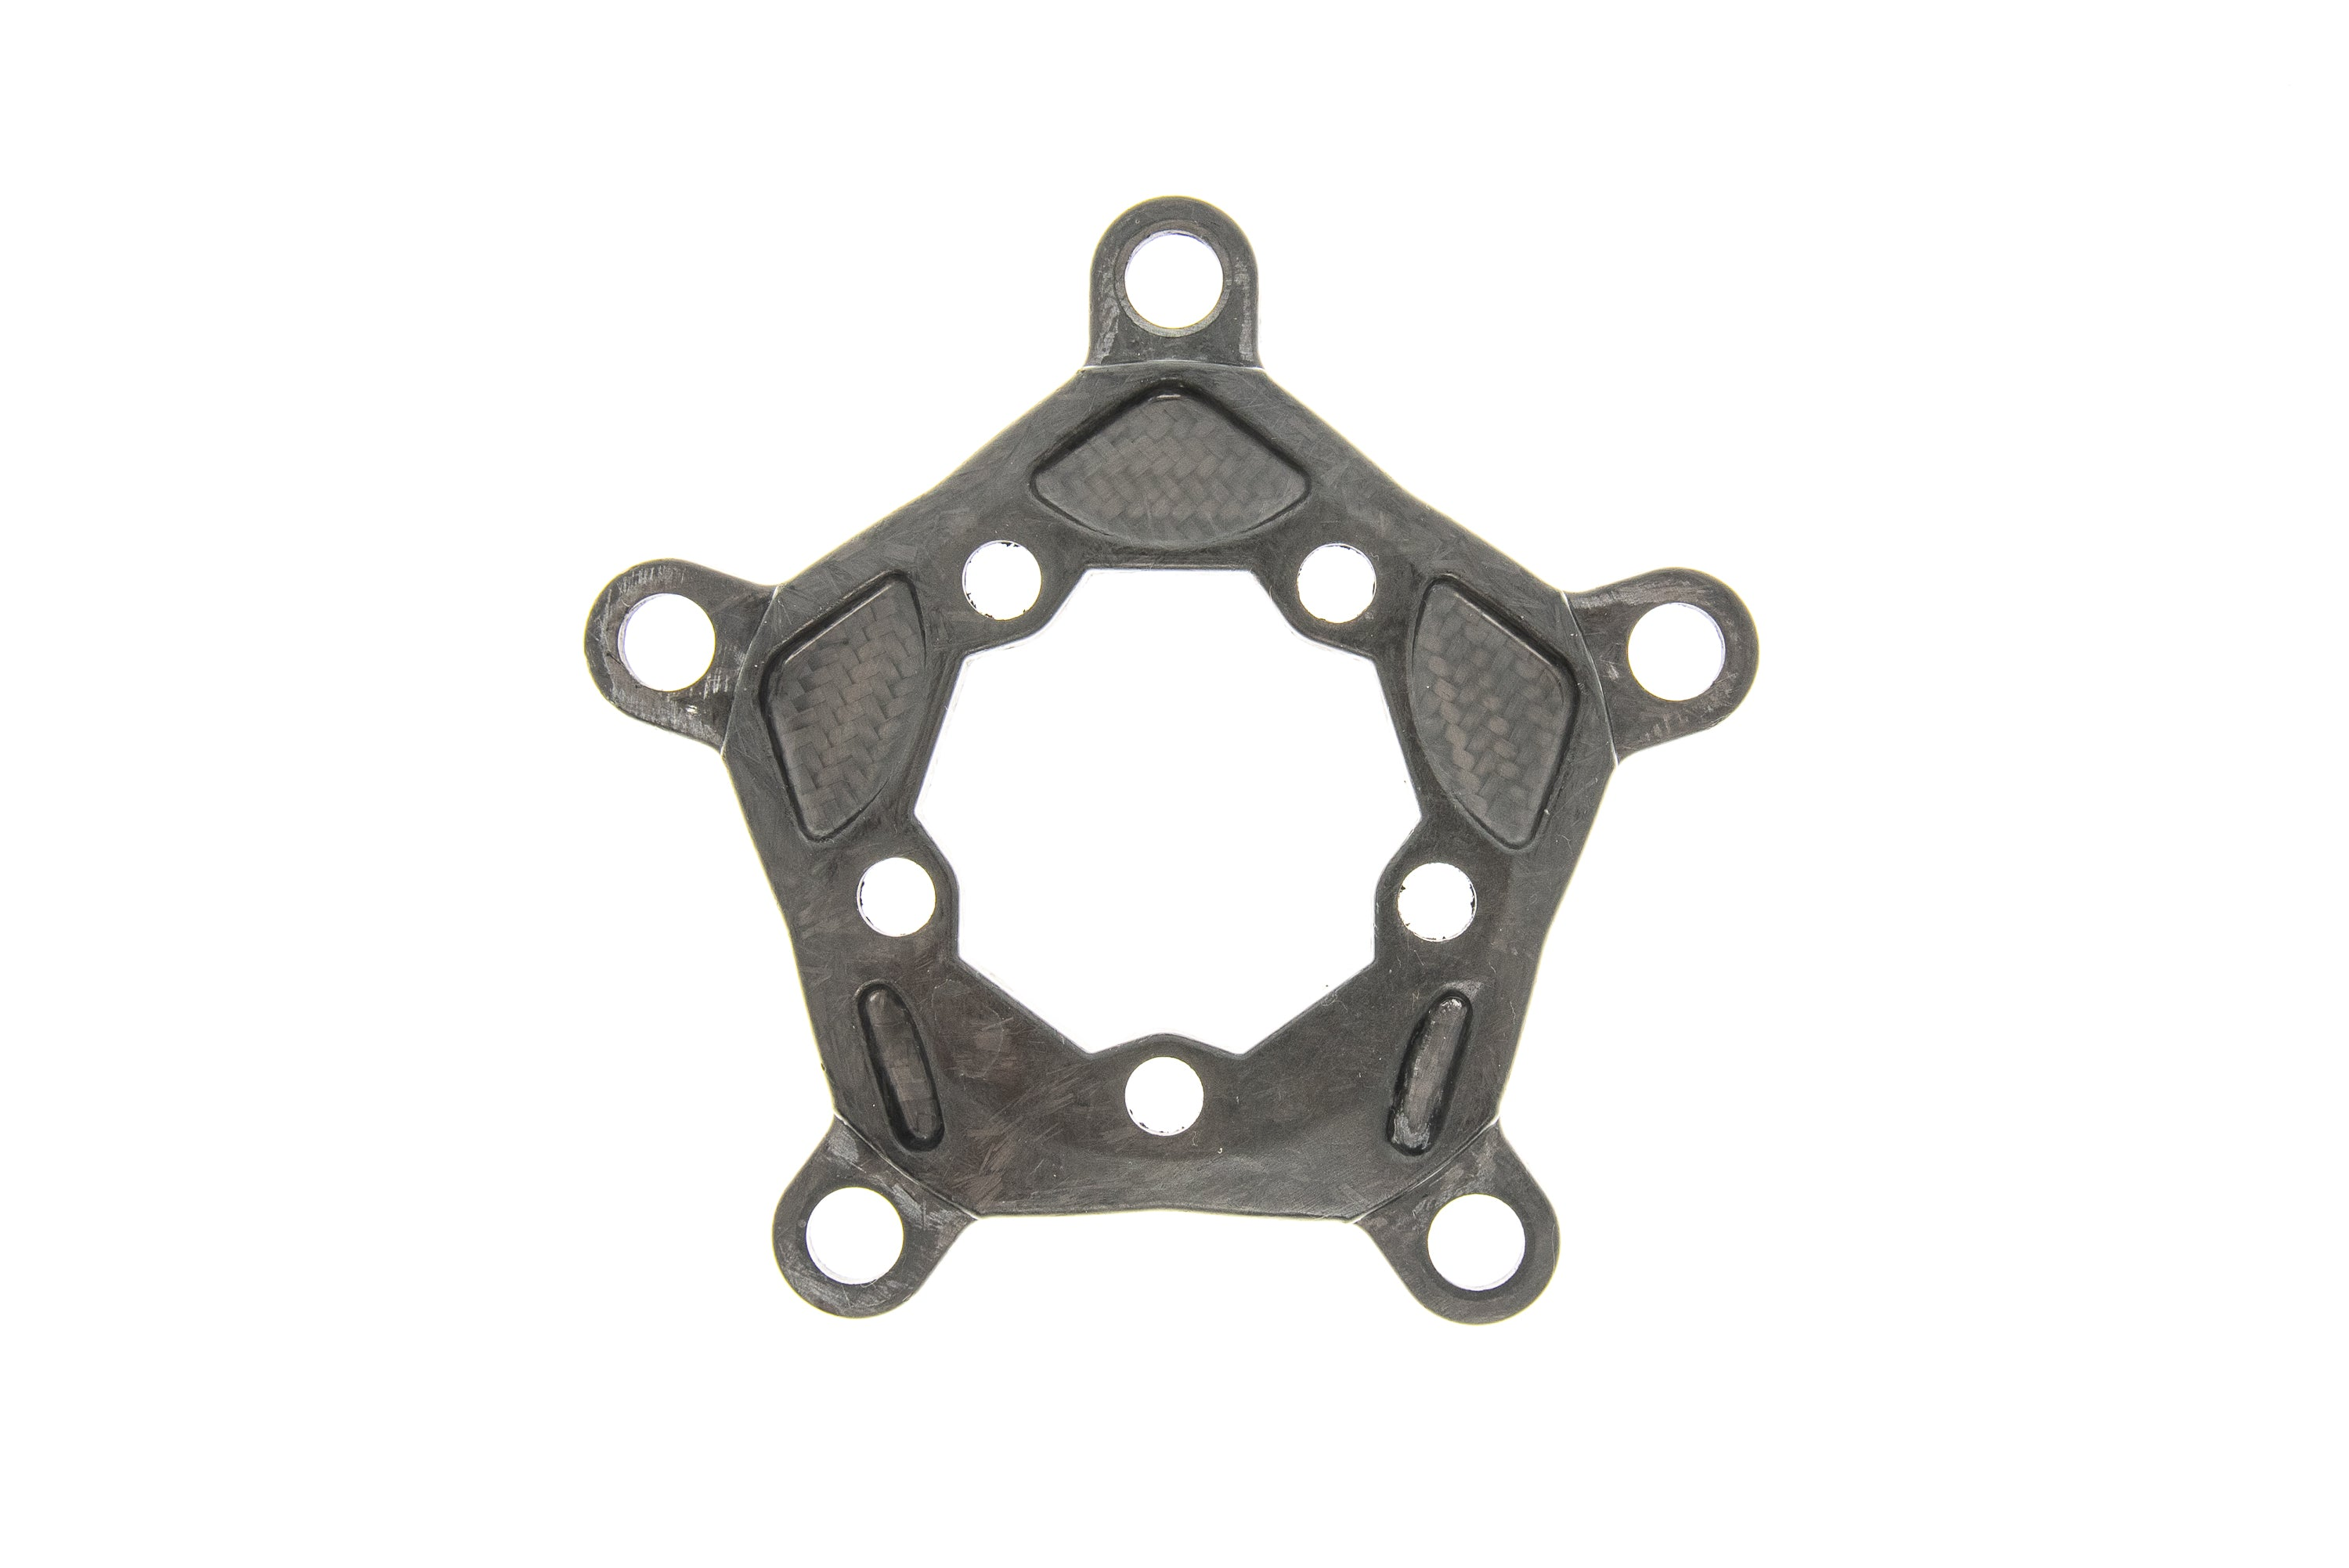 THM Spider for Clavicula M3 Road Crank Set 110mm BCD